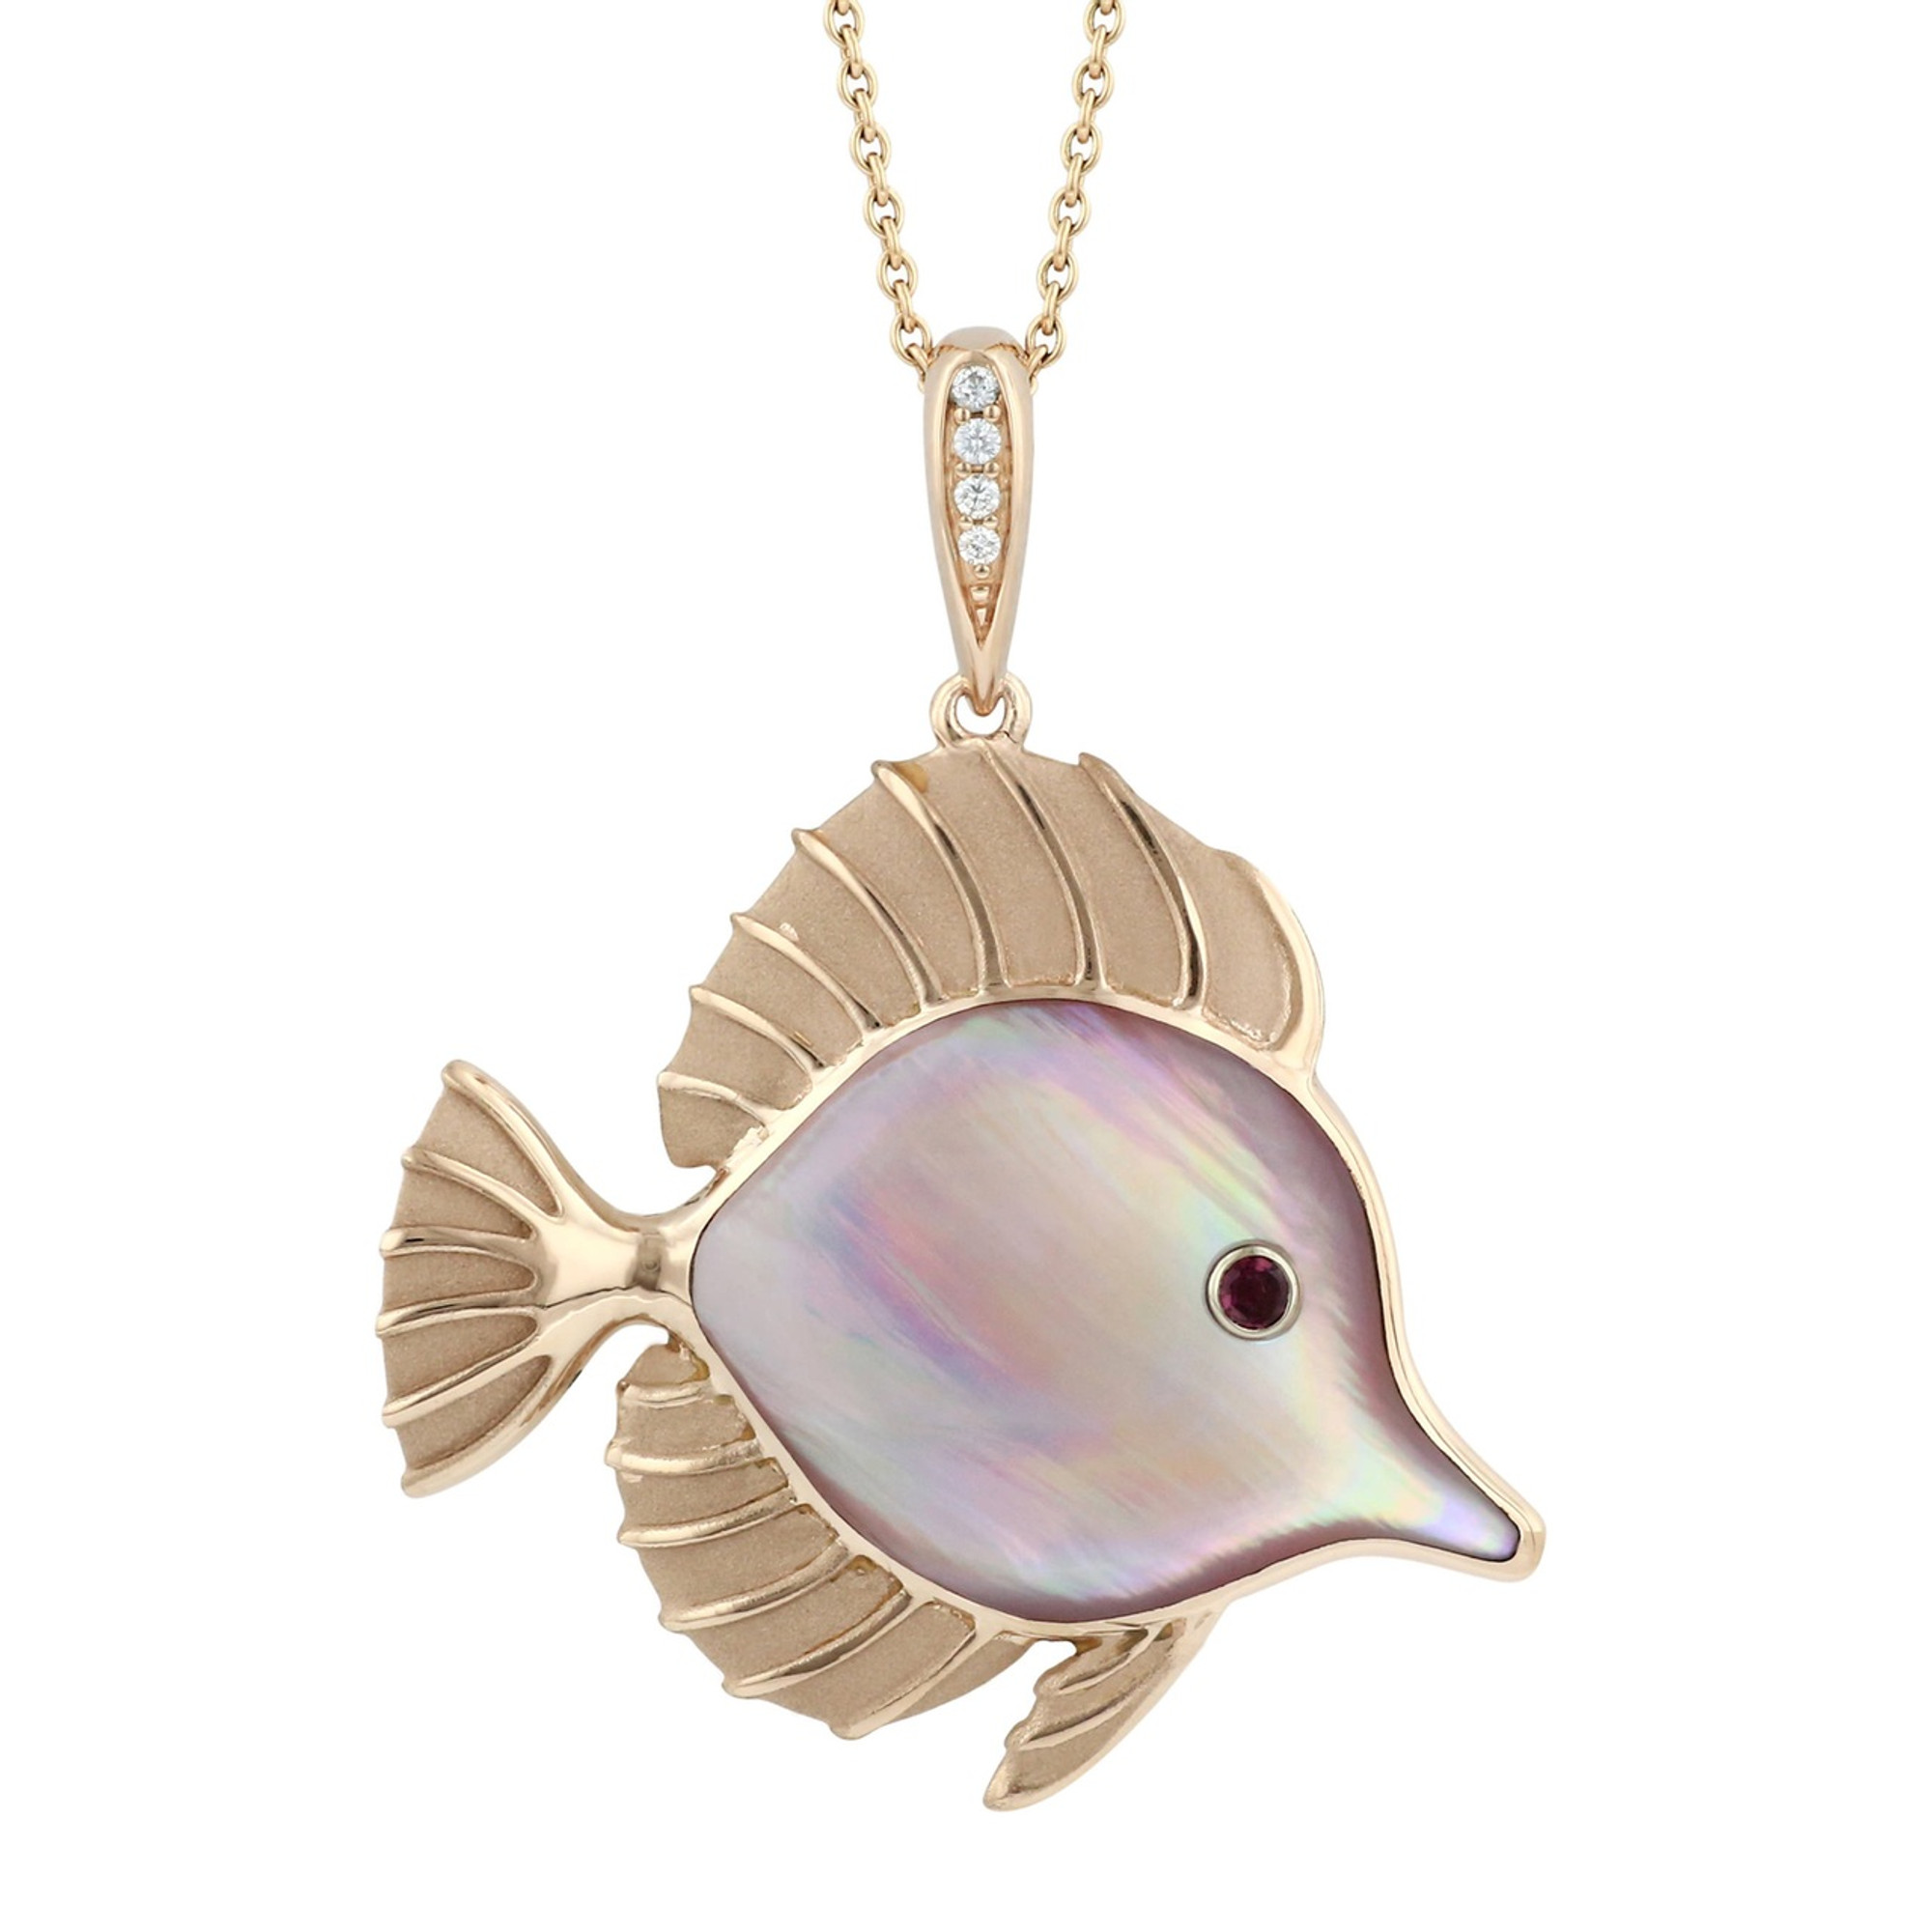 Fish 14k rose gold and mother of pearl necklace kabana fish 14k rose gold pendant with pink mother of pearl inlay necklace kabana jewelry aloadofball Image collections